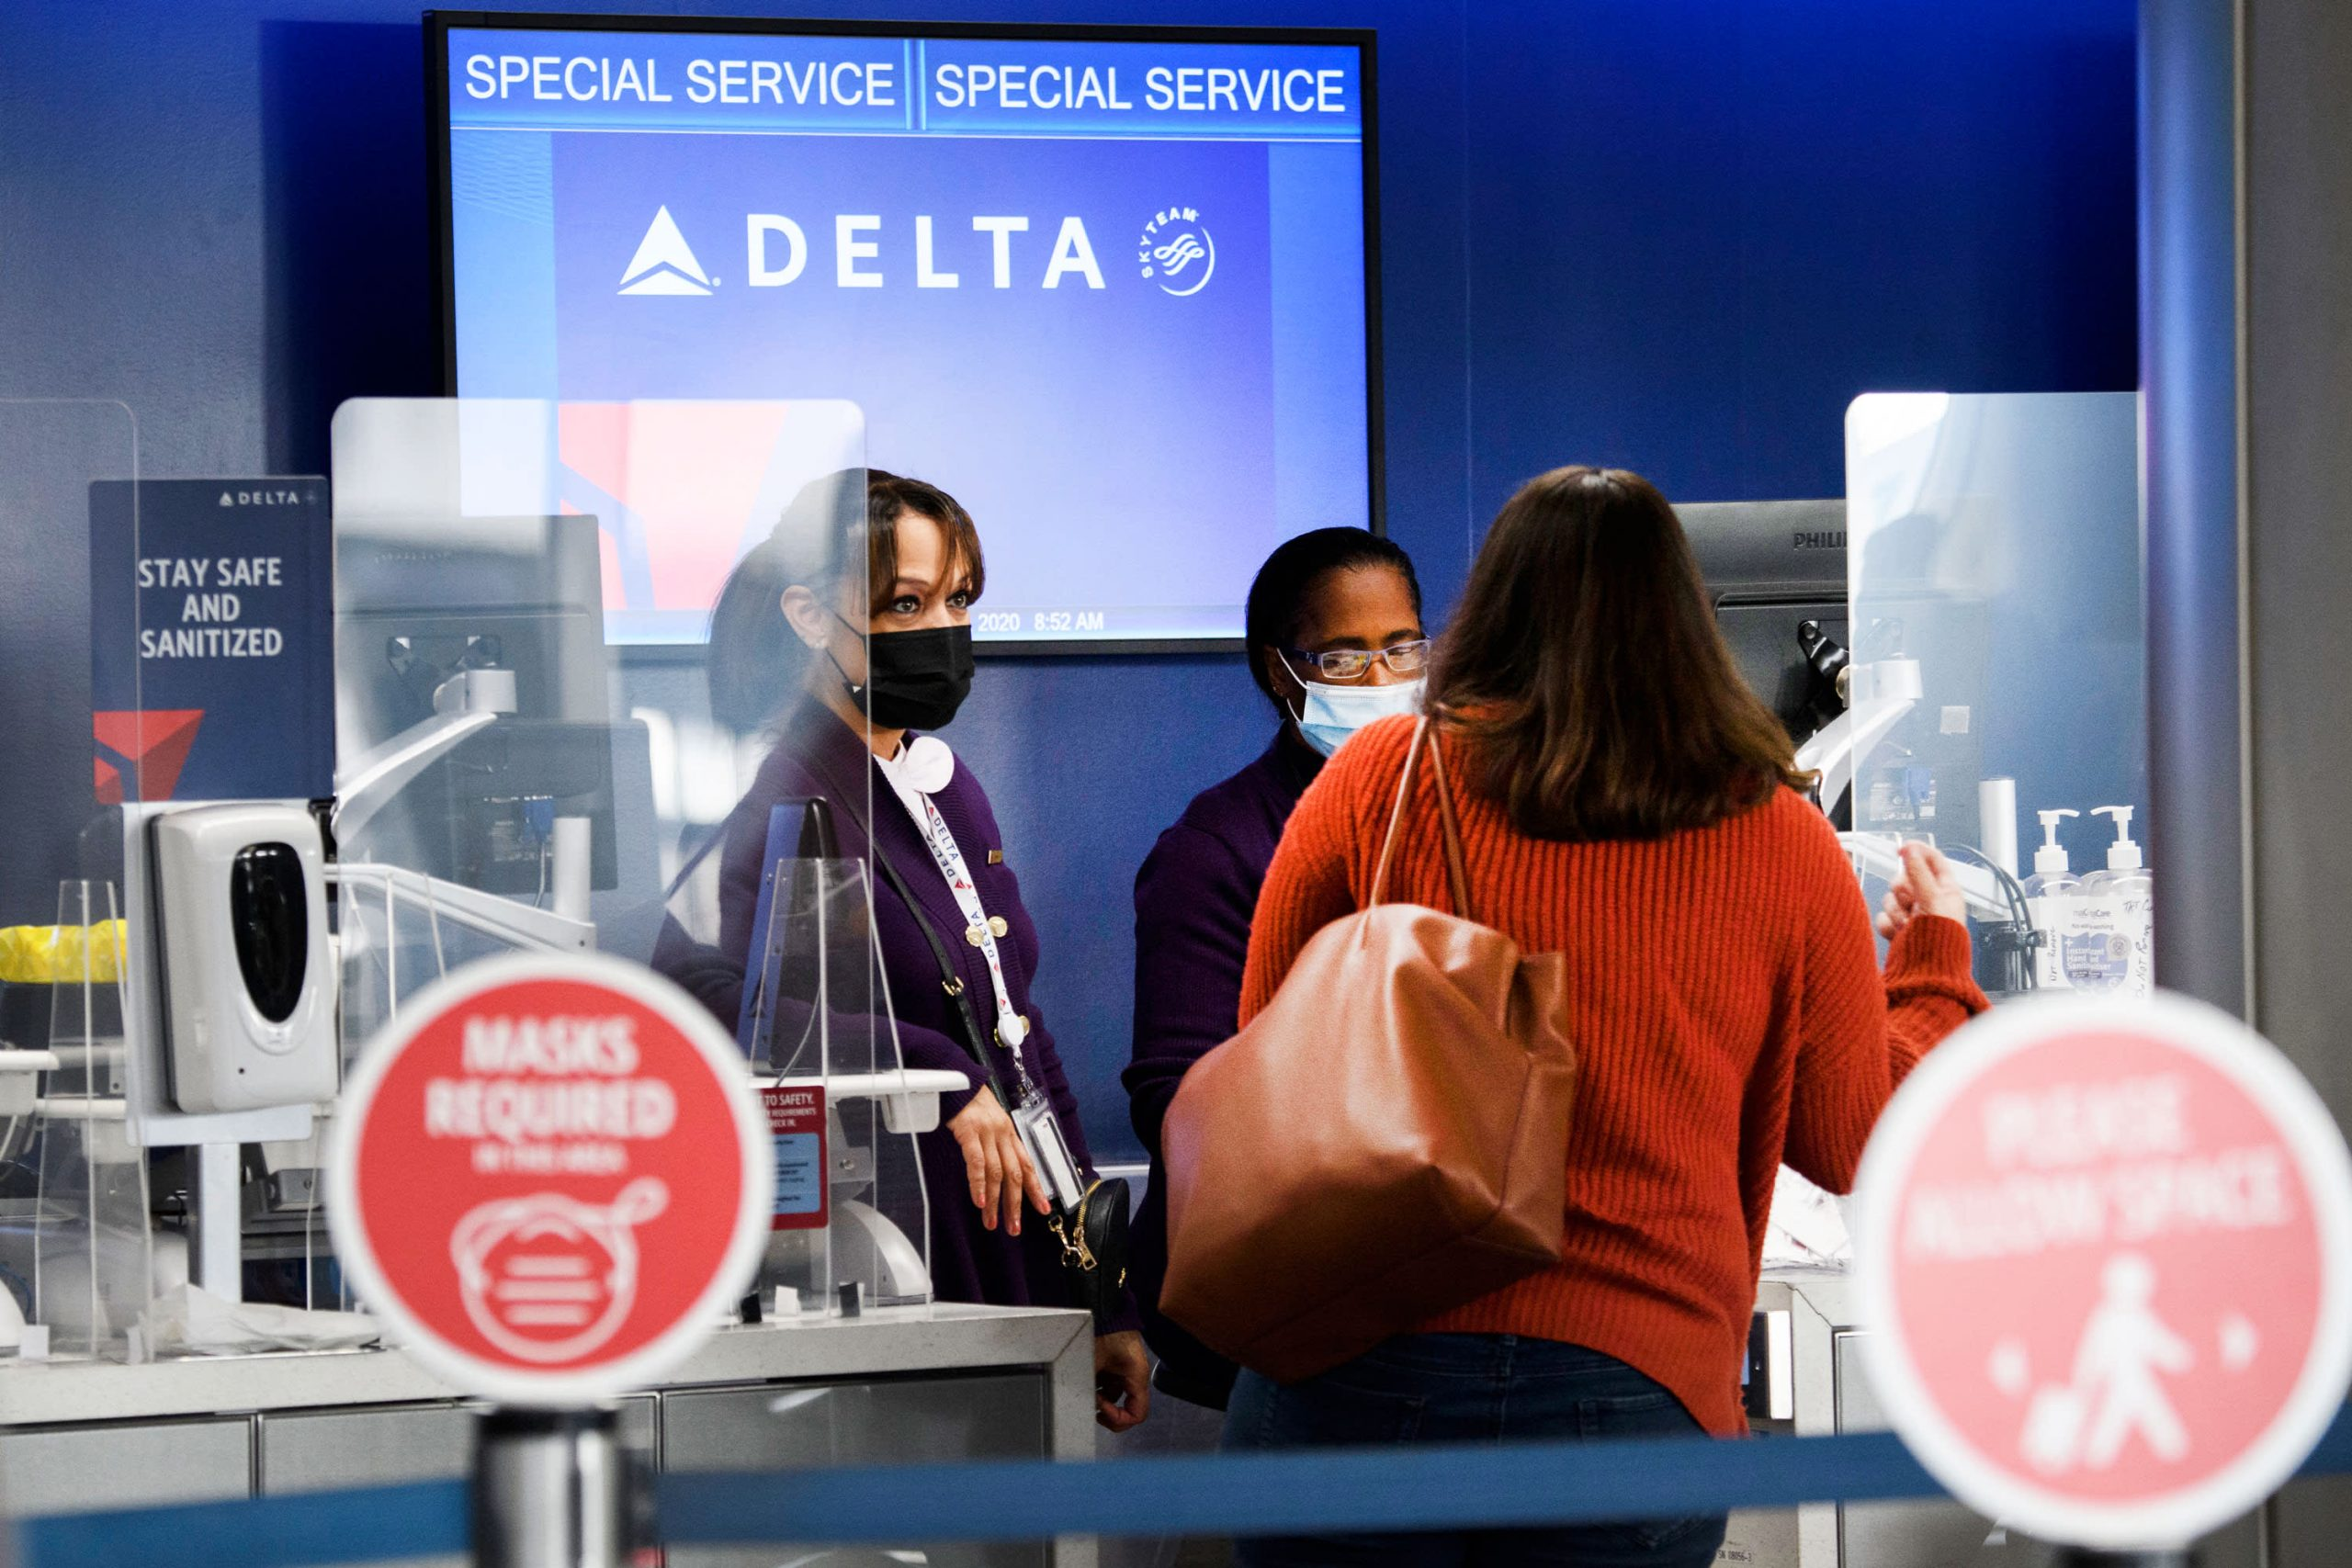 Pilot scarcity prompts uncommon flight cancellations at Delta over Thanksgiving break